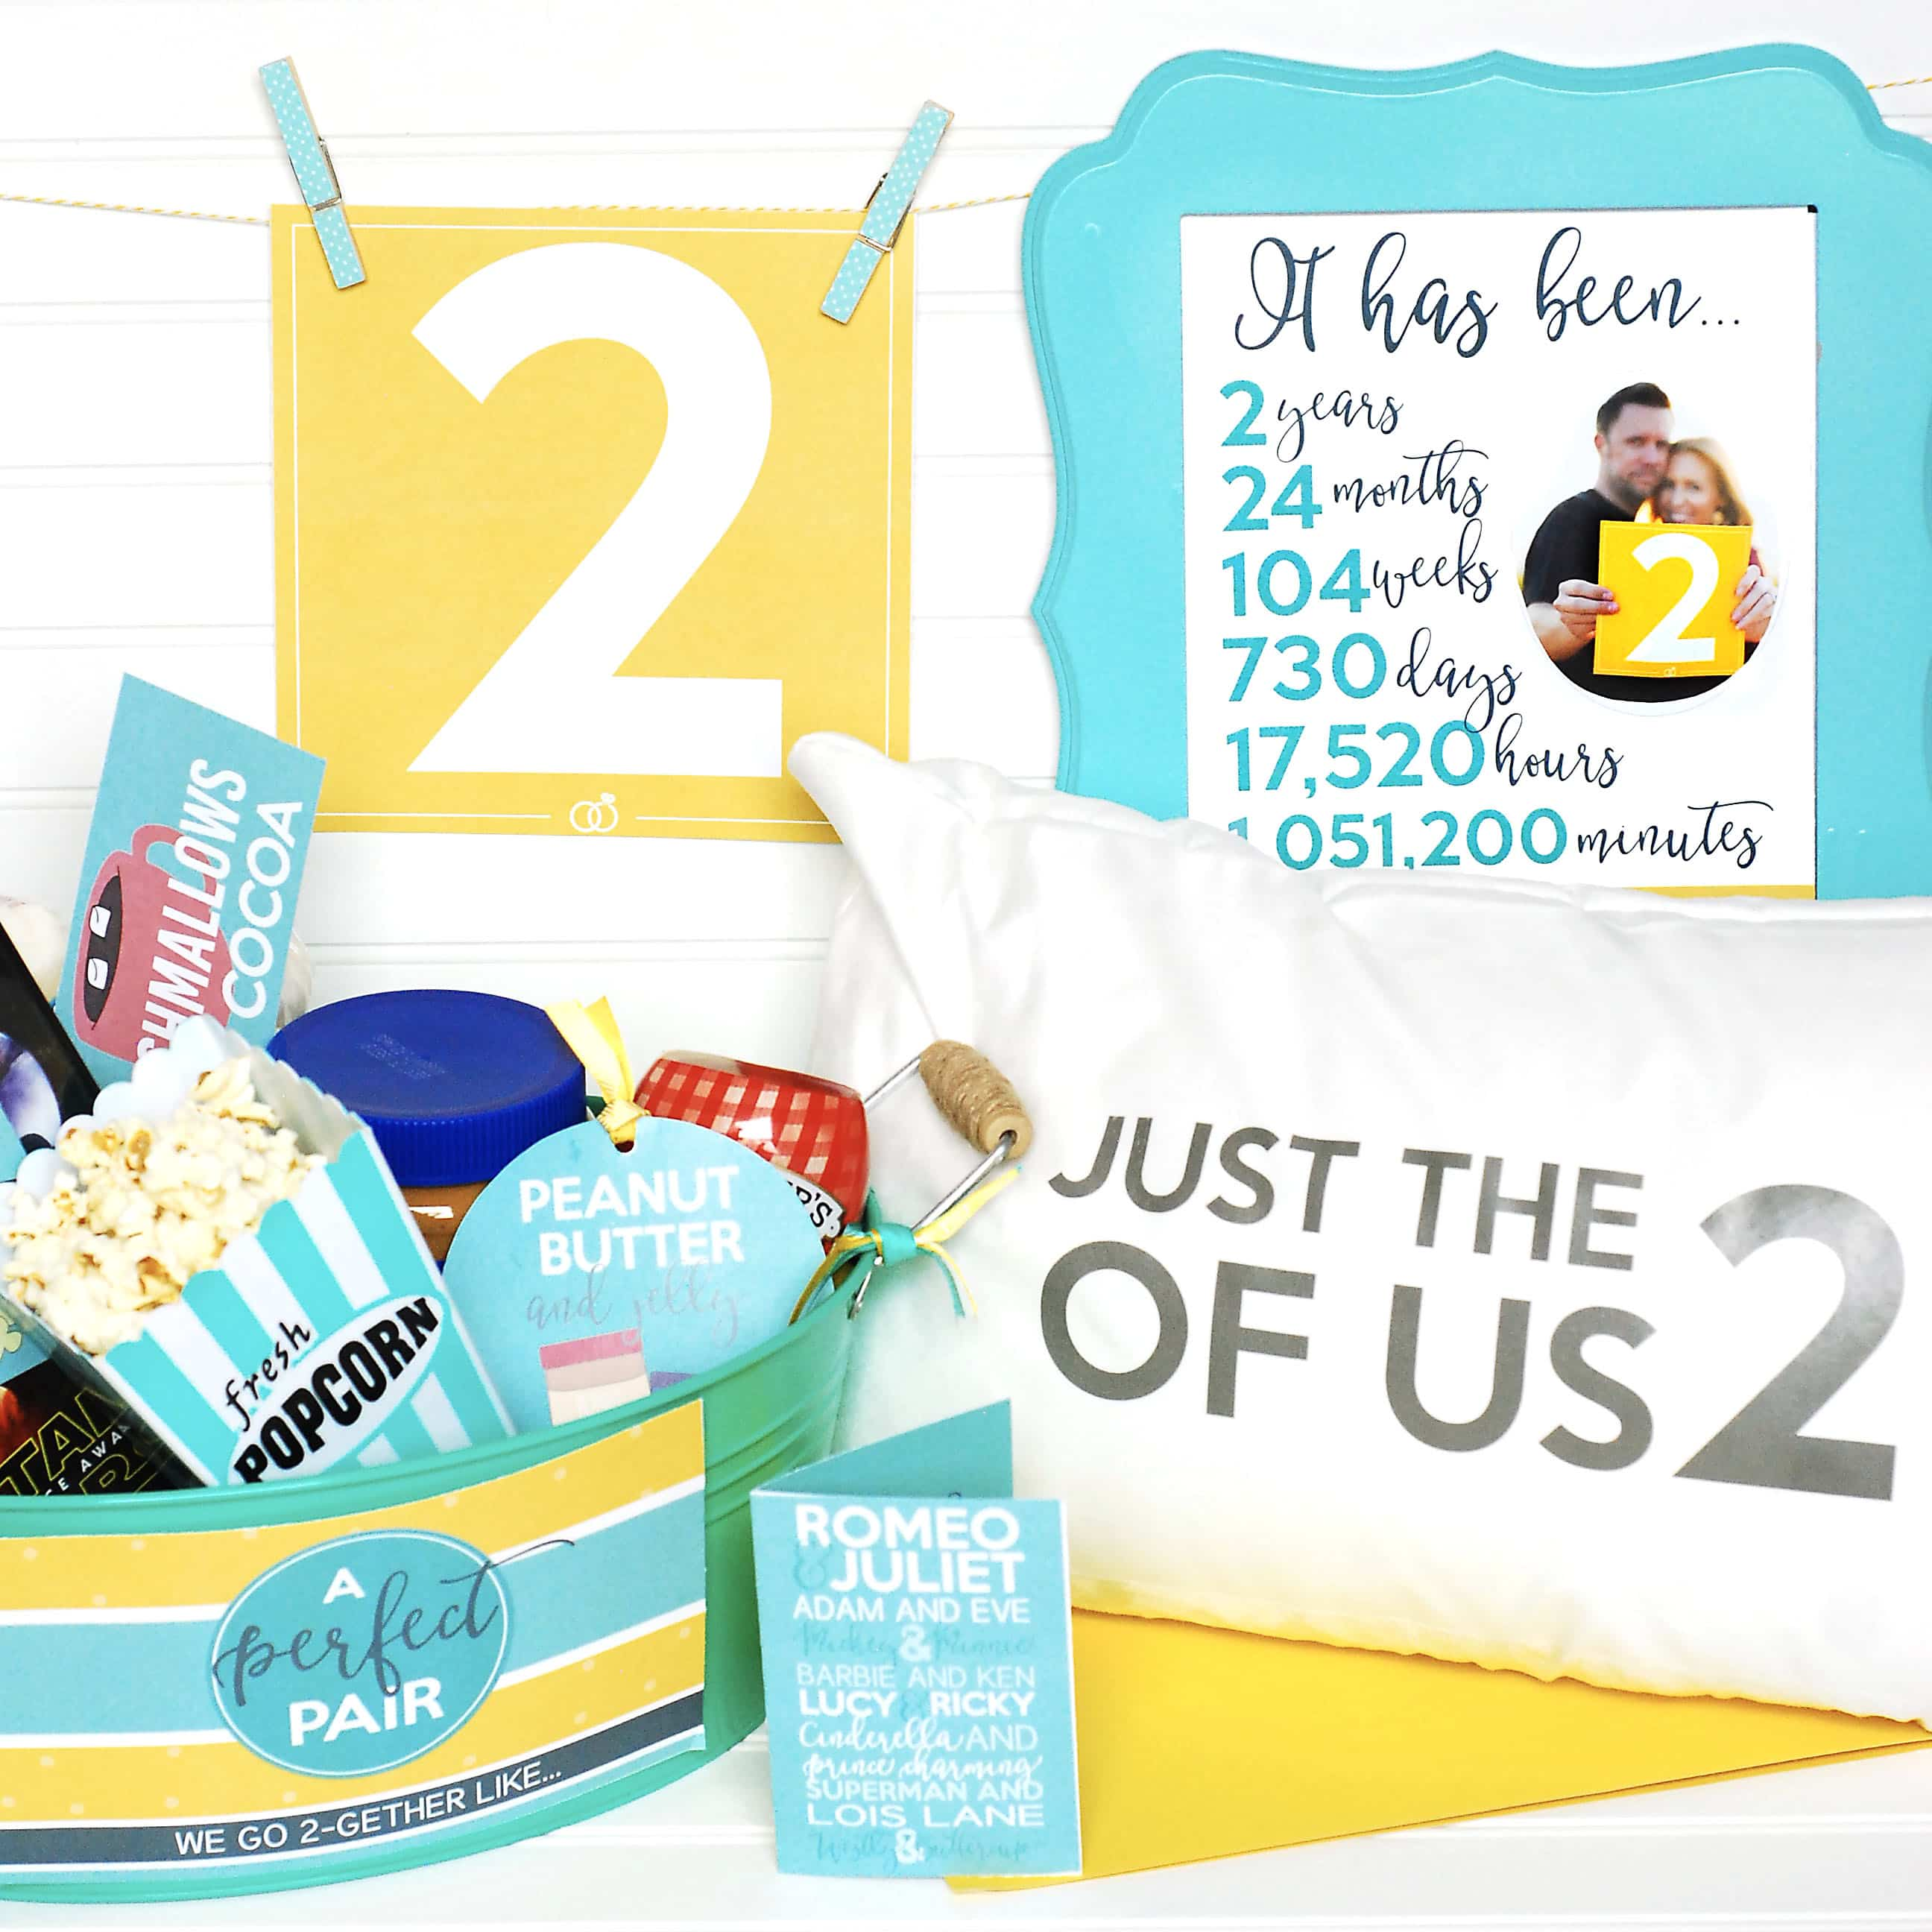 What Is The 2nd Wedding Anniversary Gift: Second Anniversary Gift Printable Kit